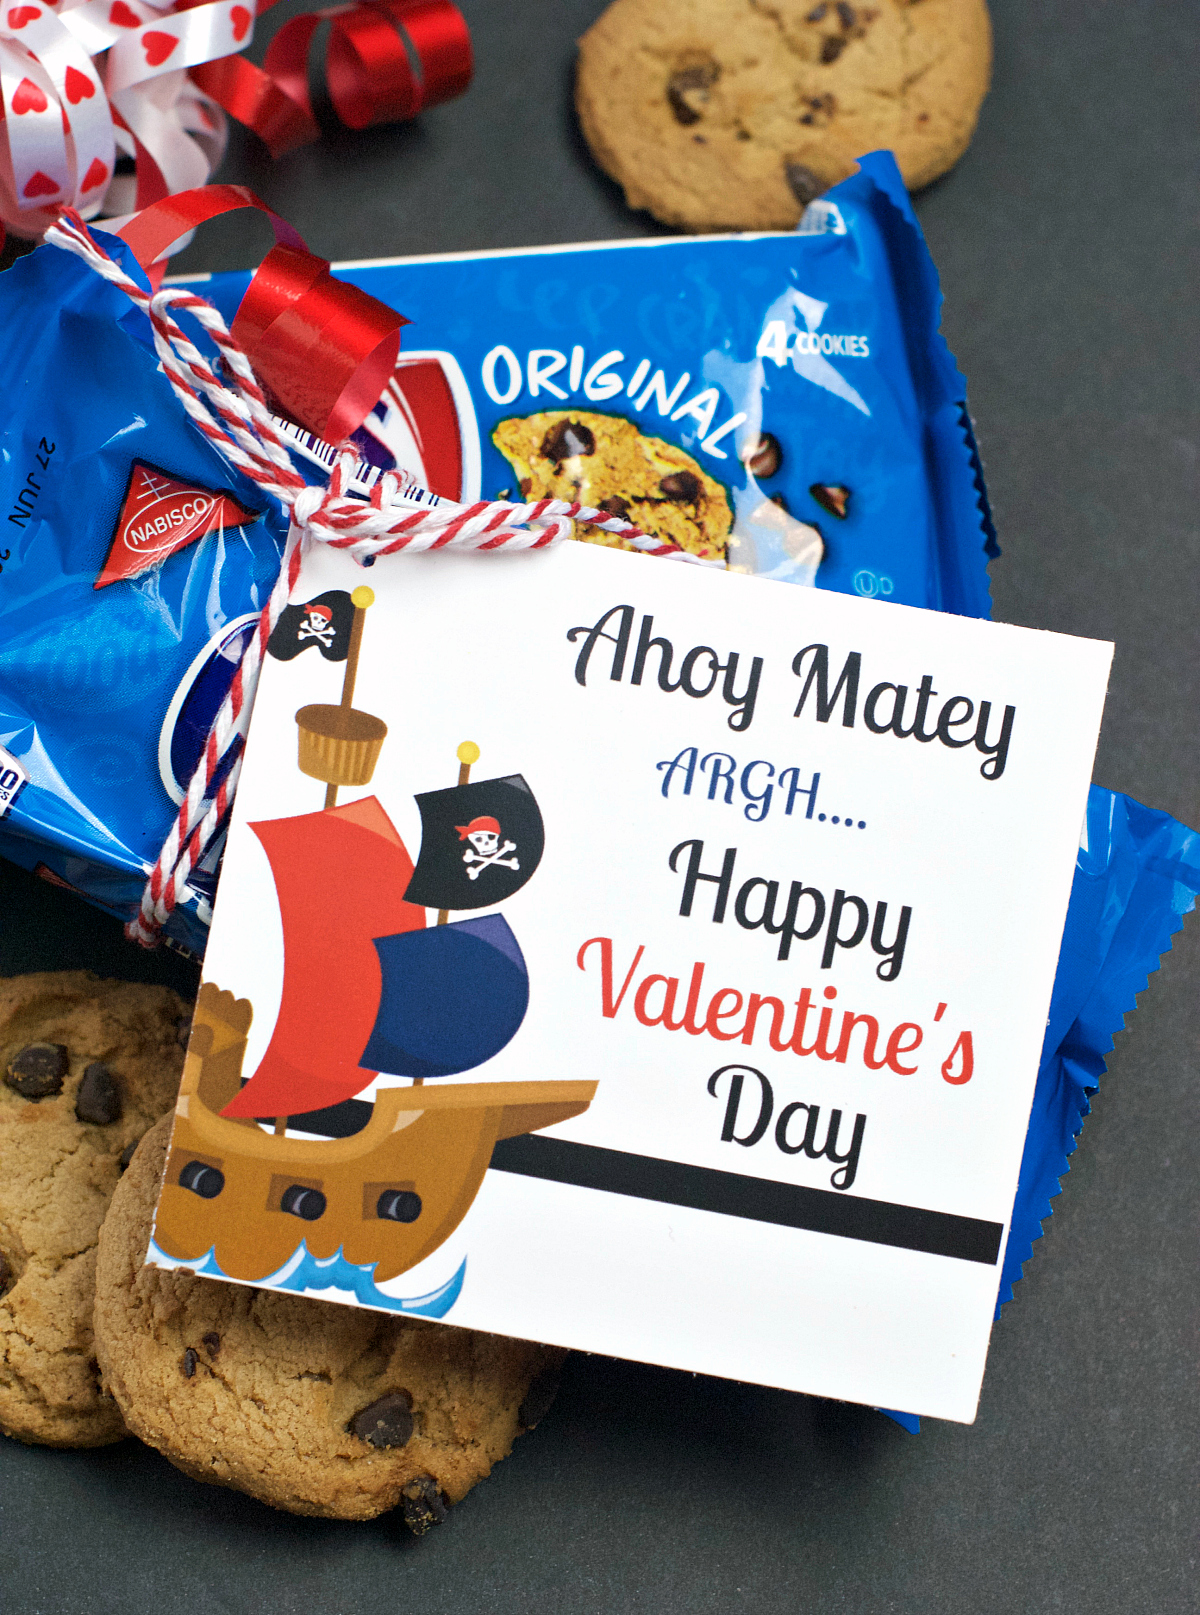 Chips Ahoy Valentine is a fun and simple way to say Happy Valentine's Day! Simply attach this printable tag to a snack pack of Chips Ahoy cookies and you will have a fun Valentine. #Valentinesday #valentine #happyvalentinesday